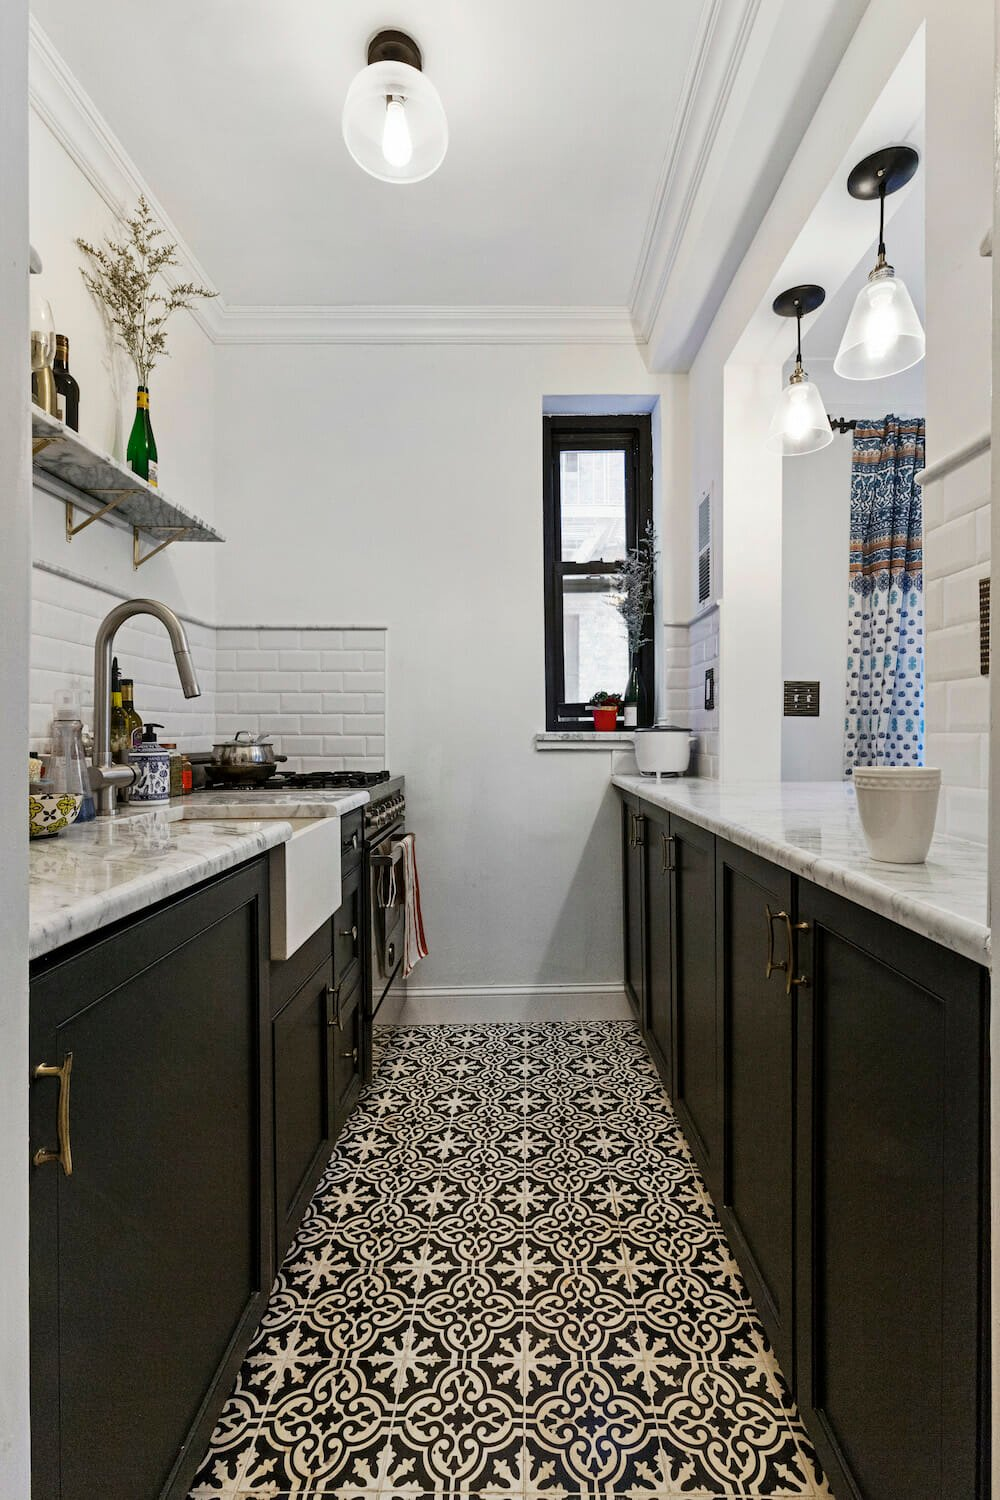 Galley Kitchen: Why A Galley Kitchen Rules In Small Kitchen Design